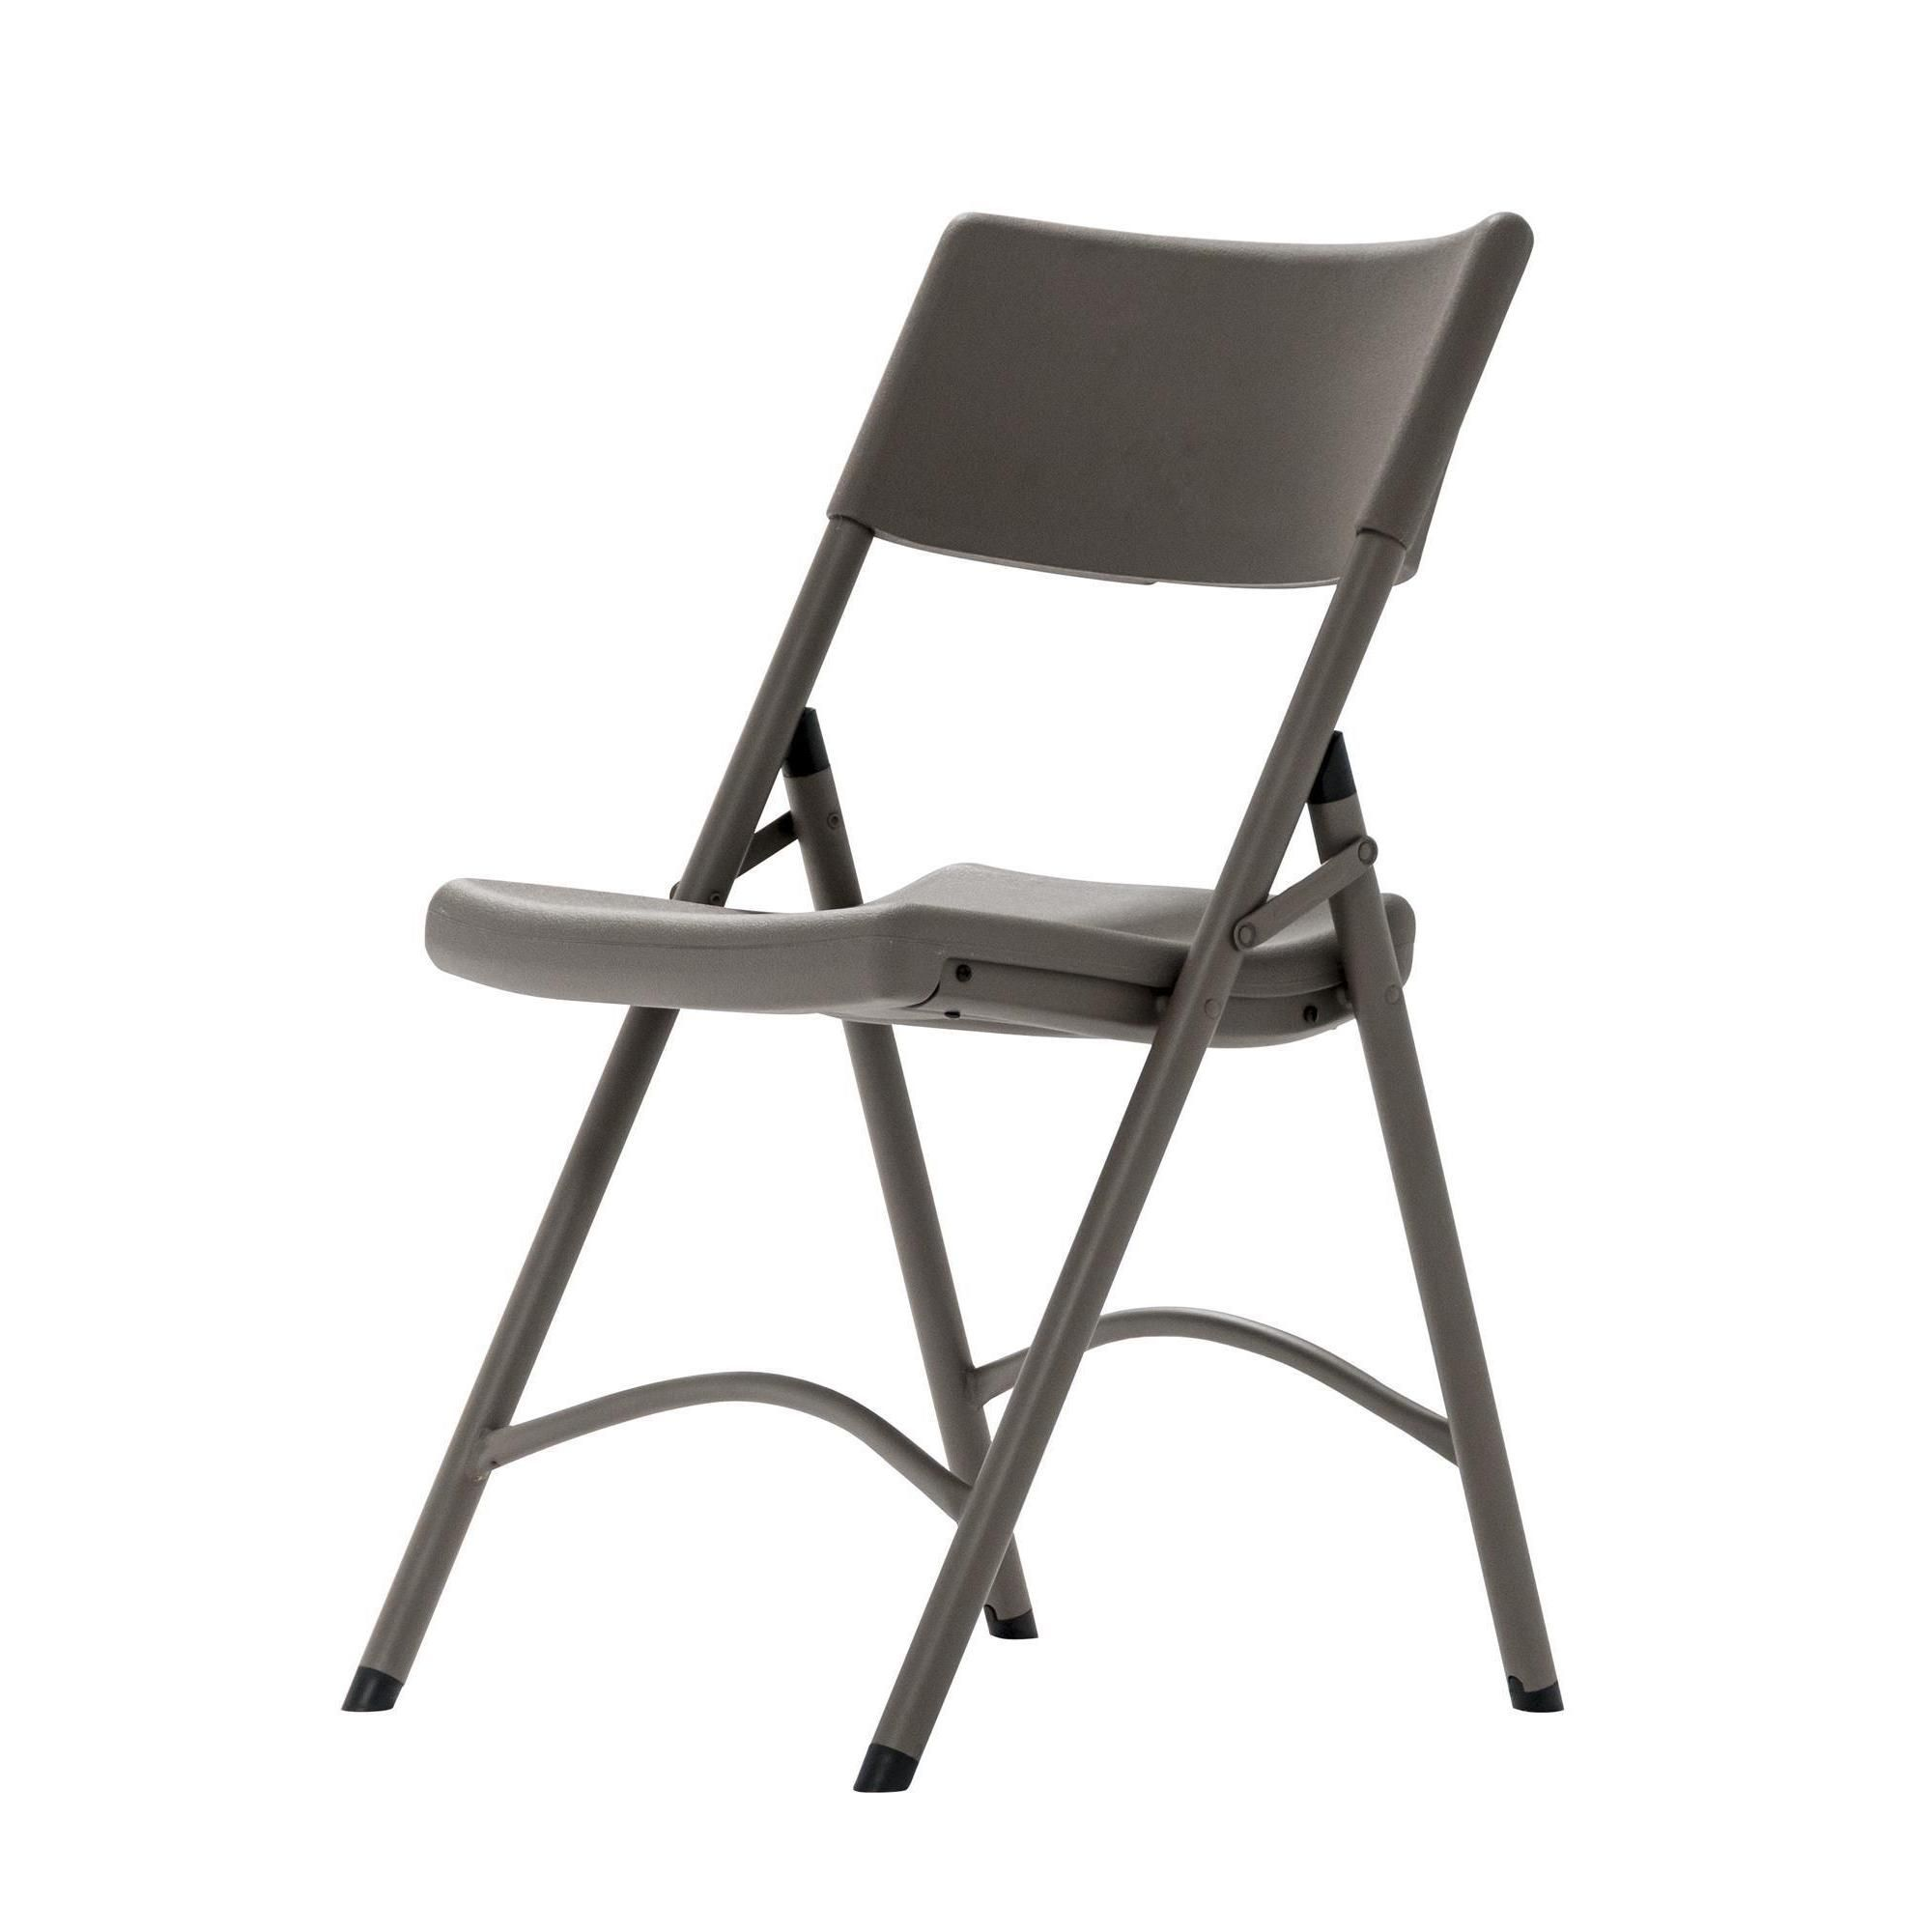 Cosco Folding Chair Cosco Commercial 4 Pack Heavy Duty Blow Mold Brown Folding Chair